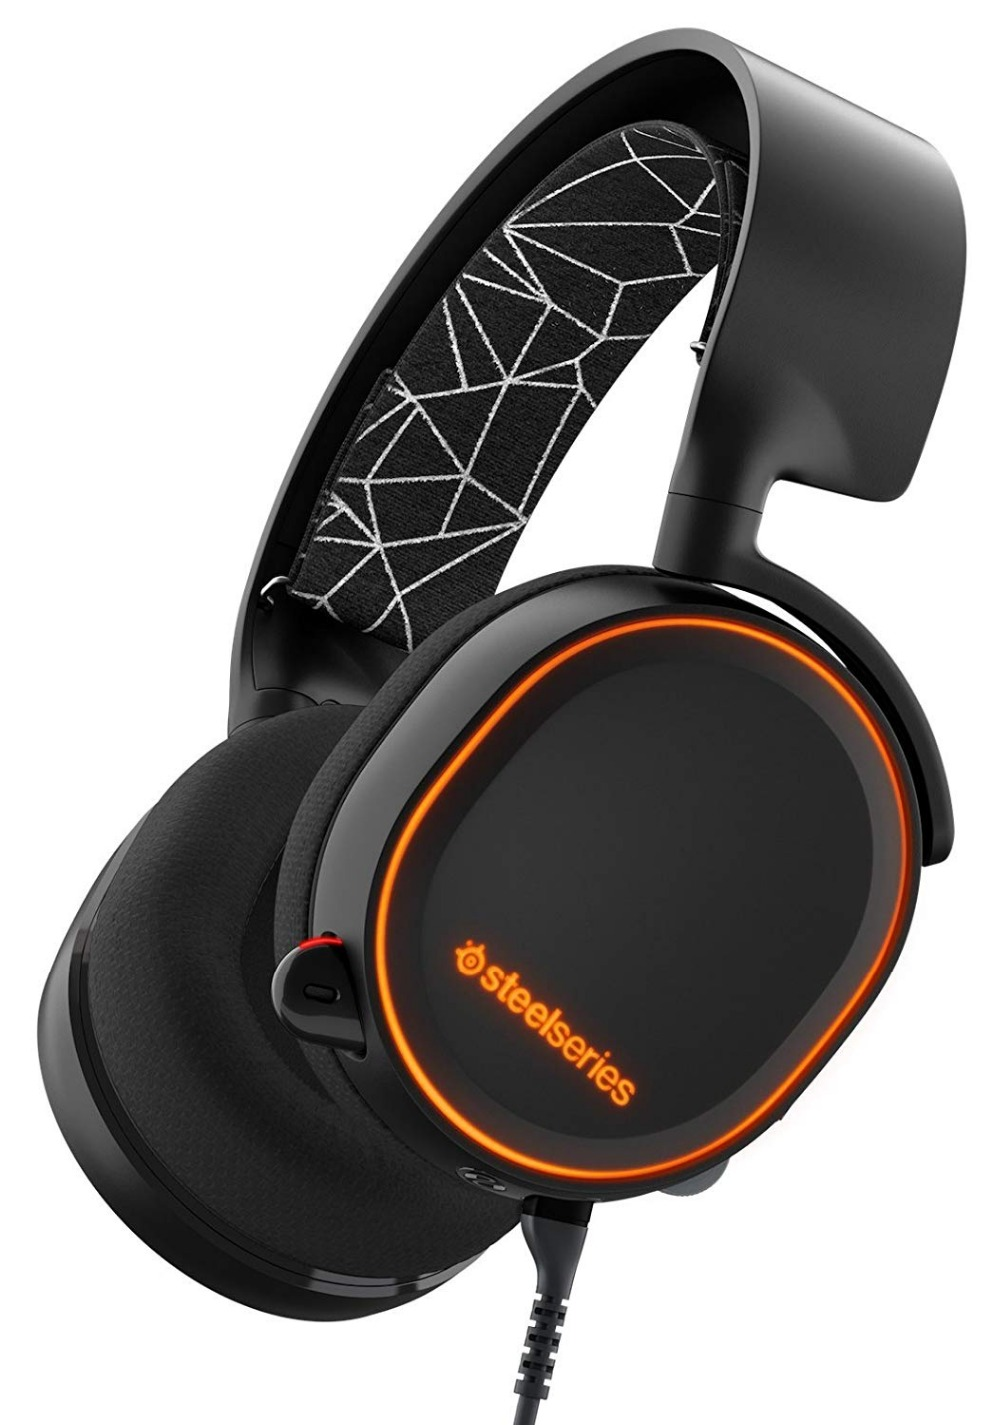 Buy Steelseries Arctis 5 Gaming Headset With Dts Logitech G231 Prodigy Headphonex 71 Surround For Pc Playstation 4 Vr Android And Ios Freeshipping From